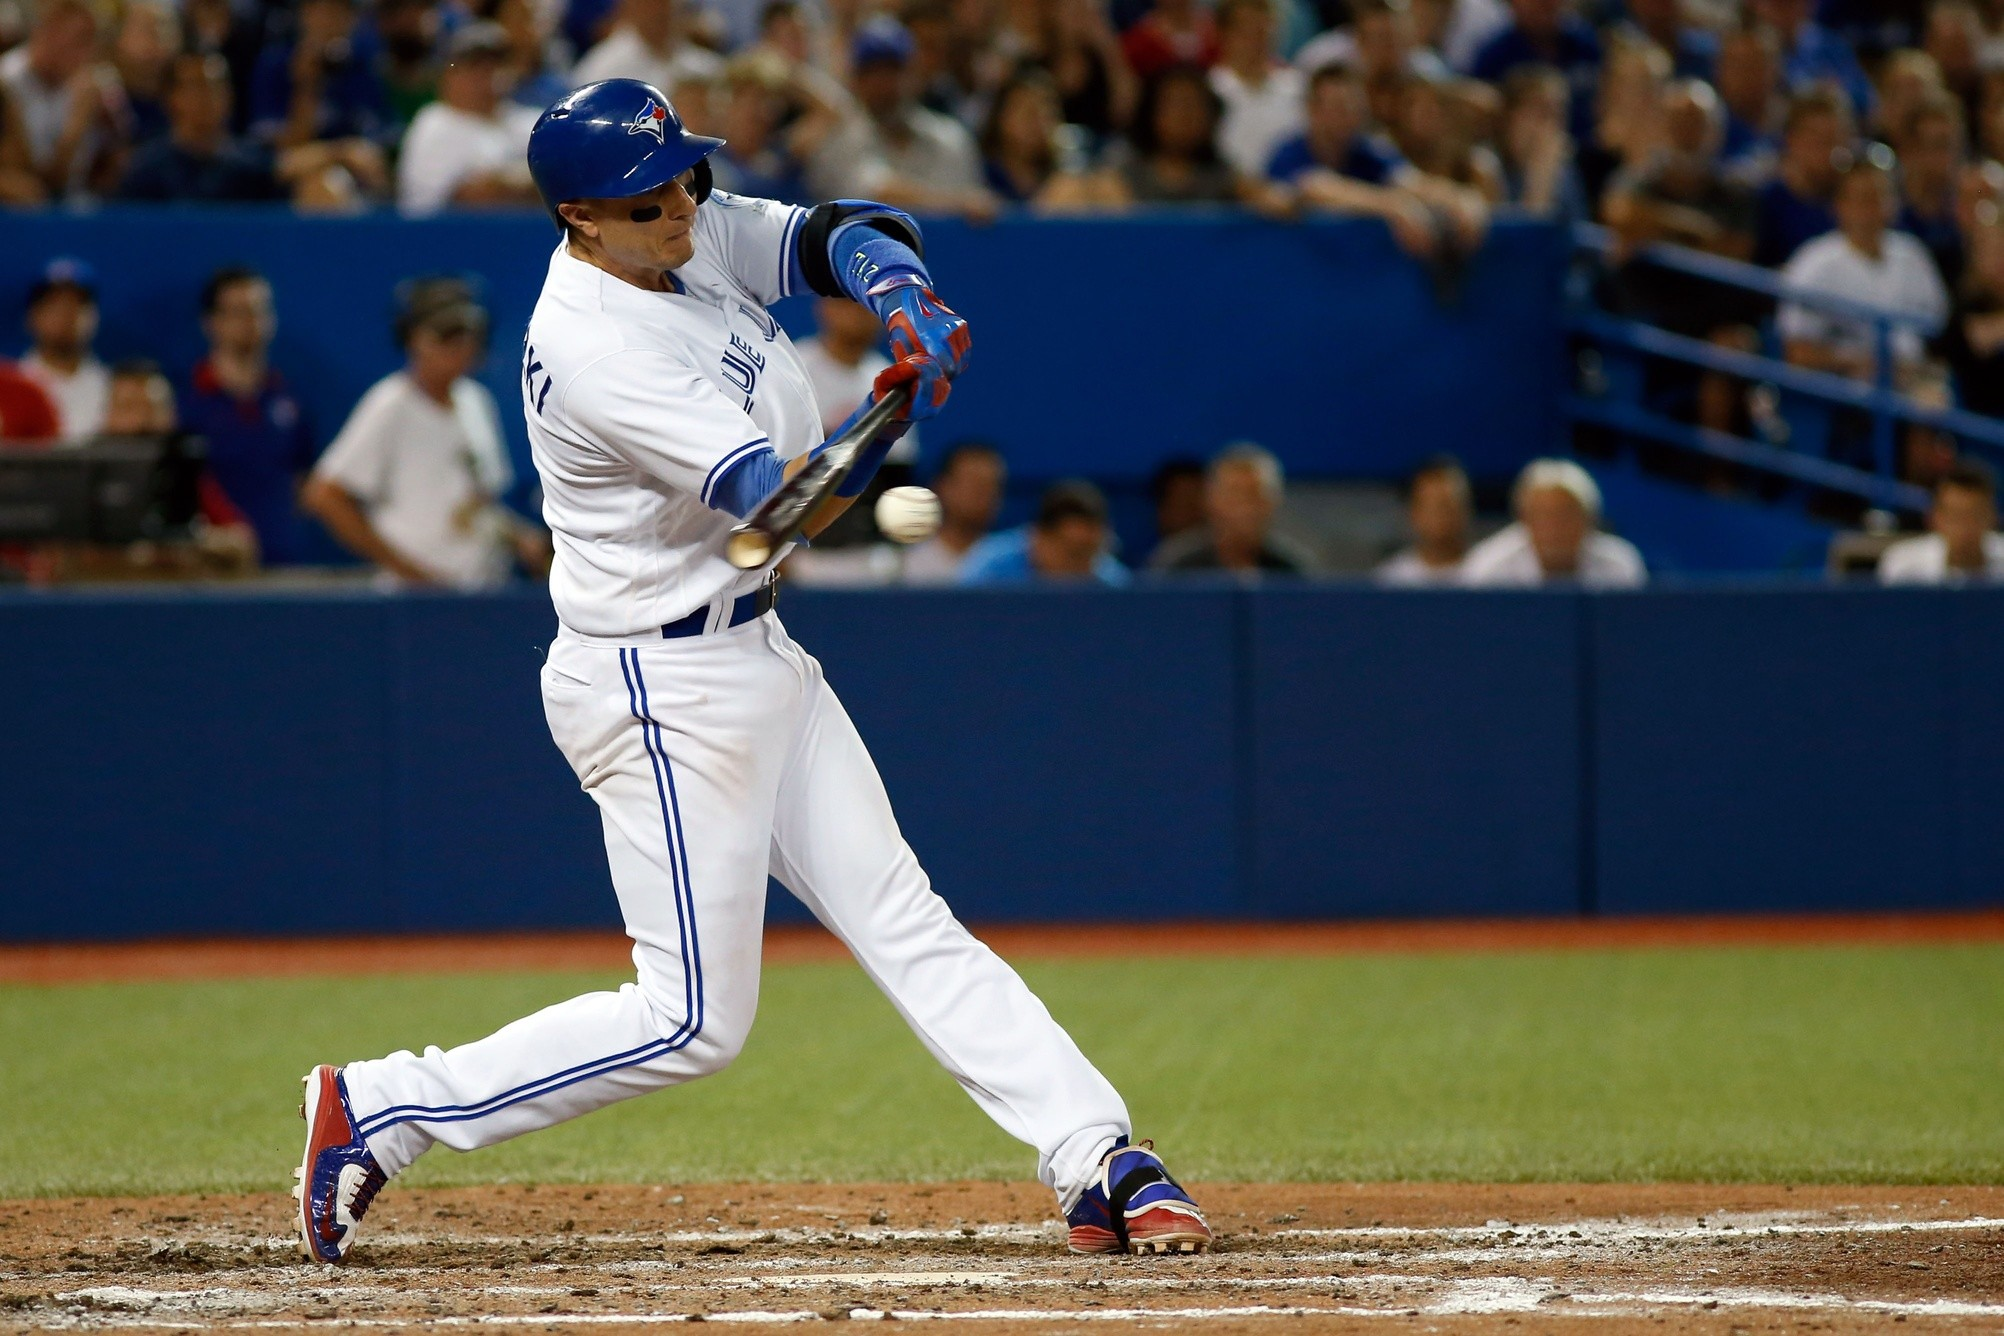 2004x1336 Recap: Blue Jays 5, Tigers 4; The Real Troy Tulowitzki is Back